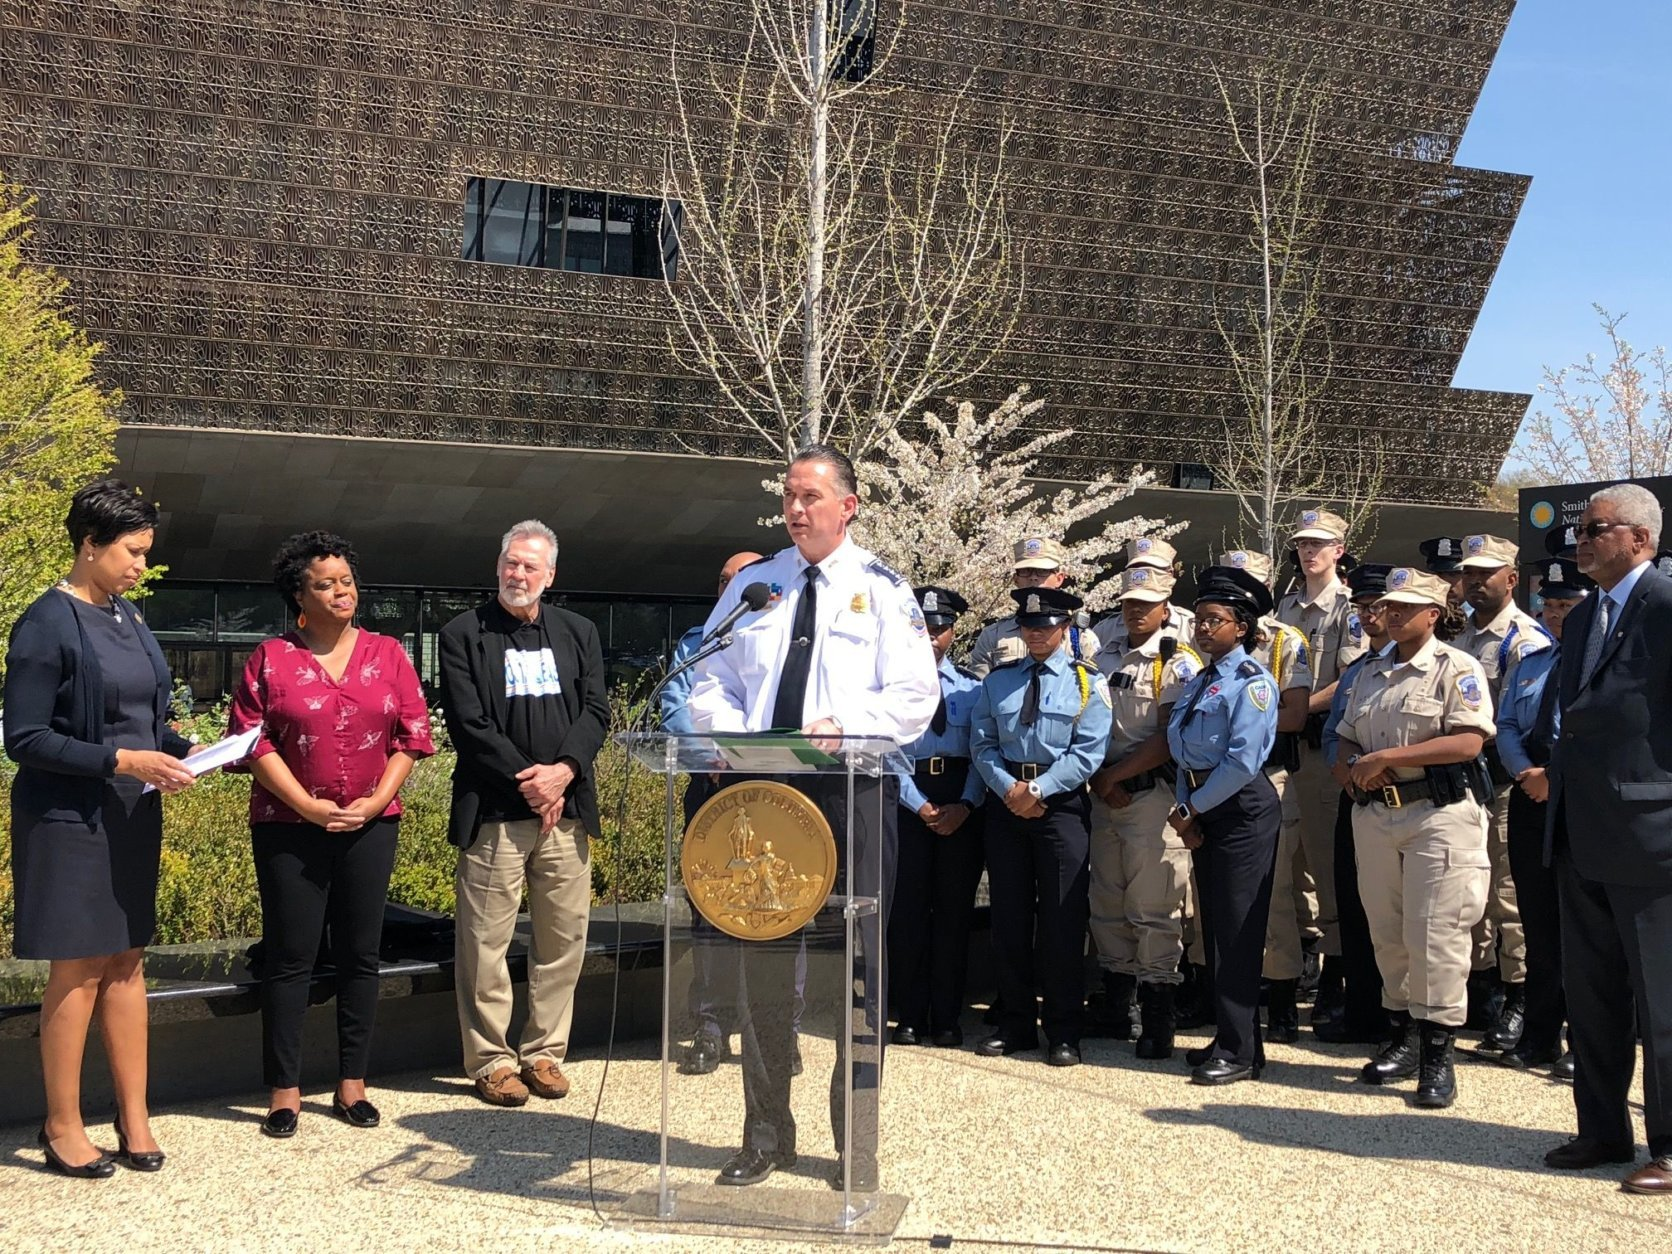 D.C. Police Chief Peter Newsham speaks during a press conference about the importance of the program to educate officers on the city's history with race and how policing has changed over the years. (WTOP/Megan Cloherty)